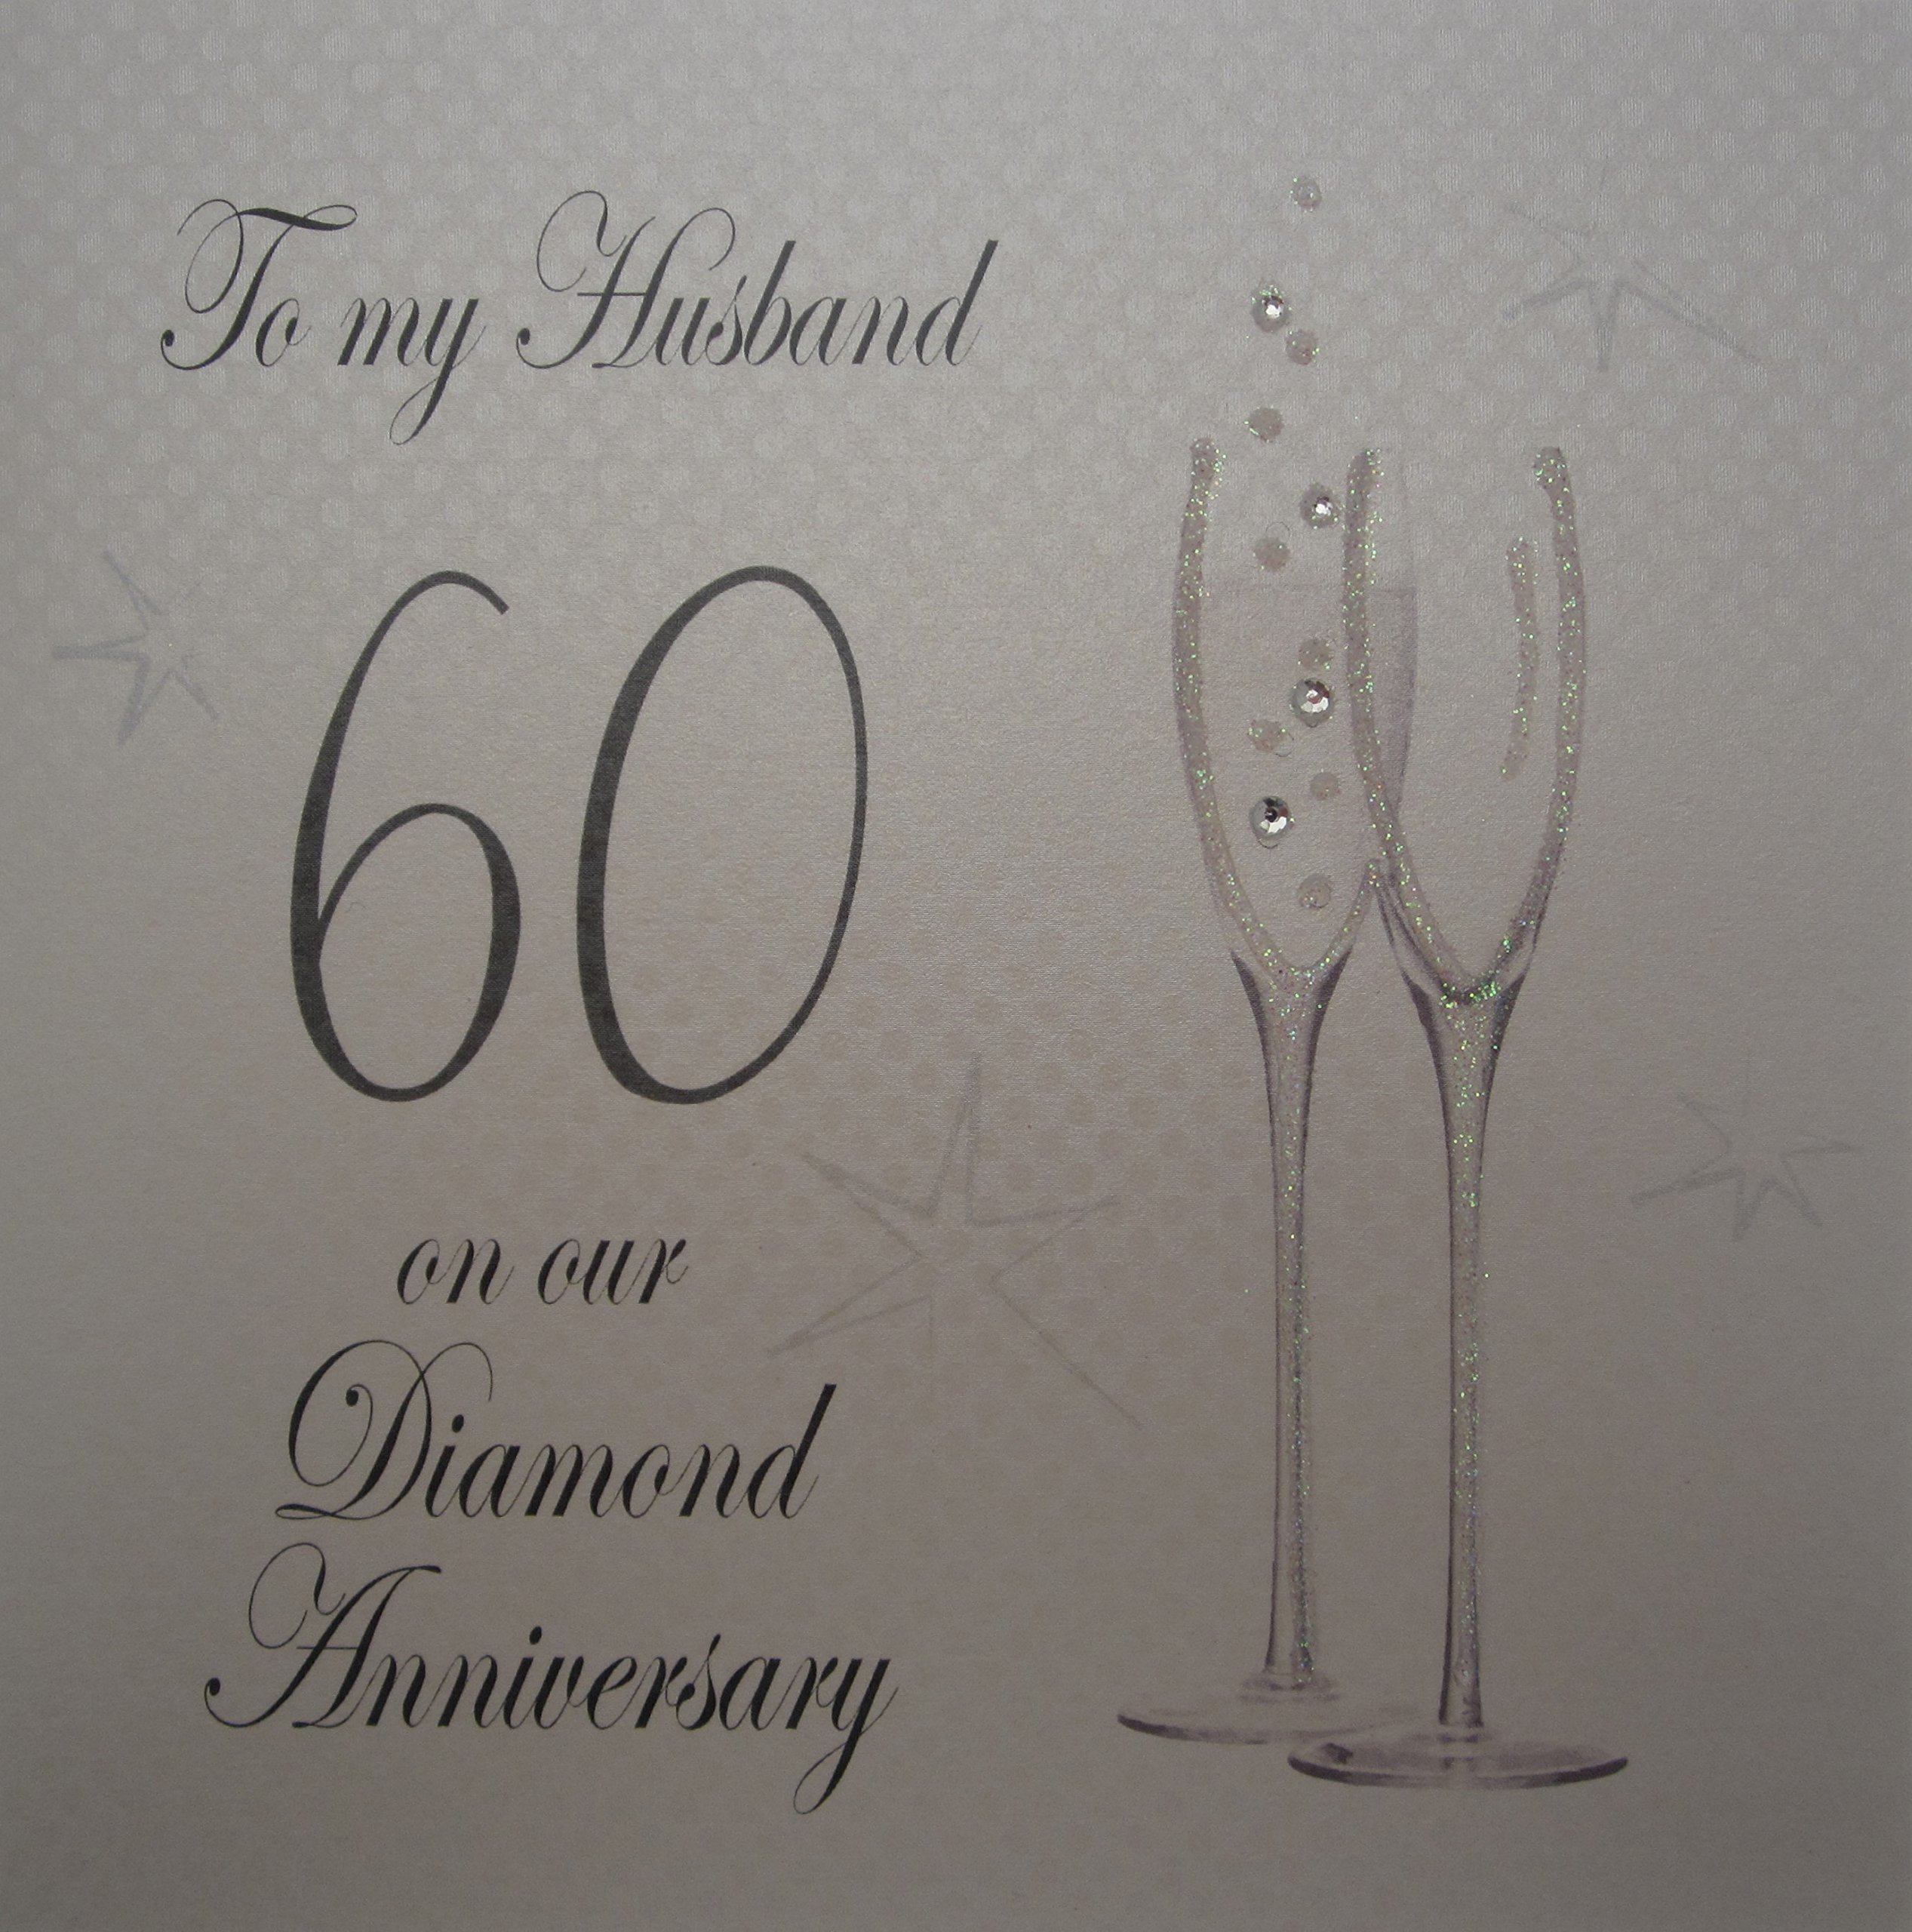 White Cotton Cards P60H Champagne Flutes''To My Husband On Our Diamond Anniversary'' Handmade 60th Anniversary Card, White